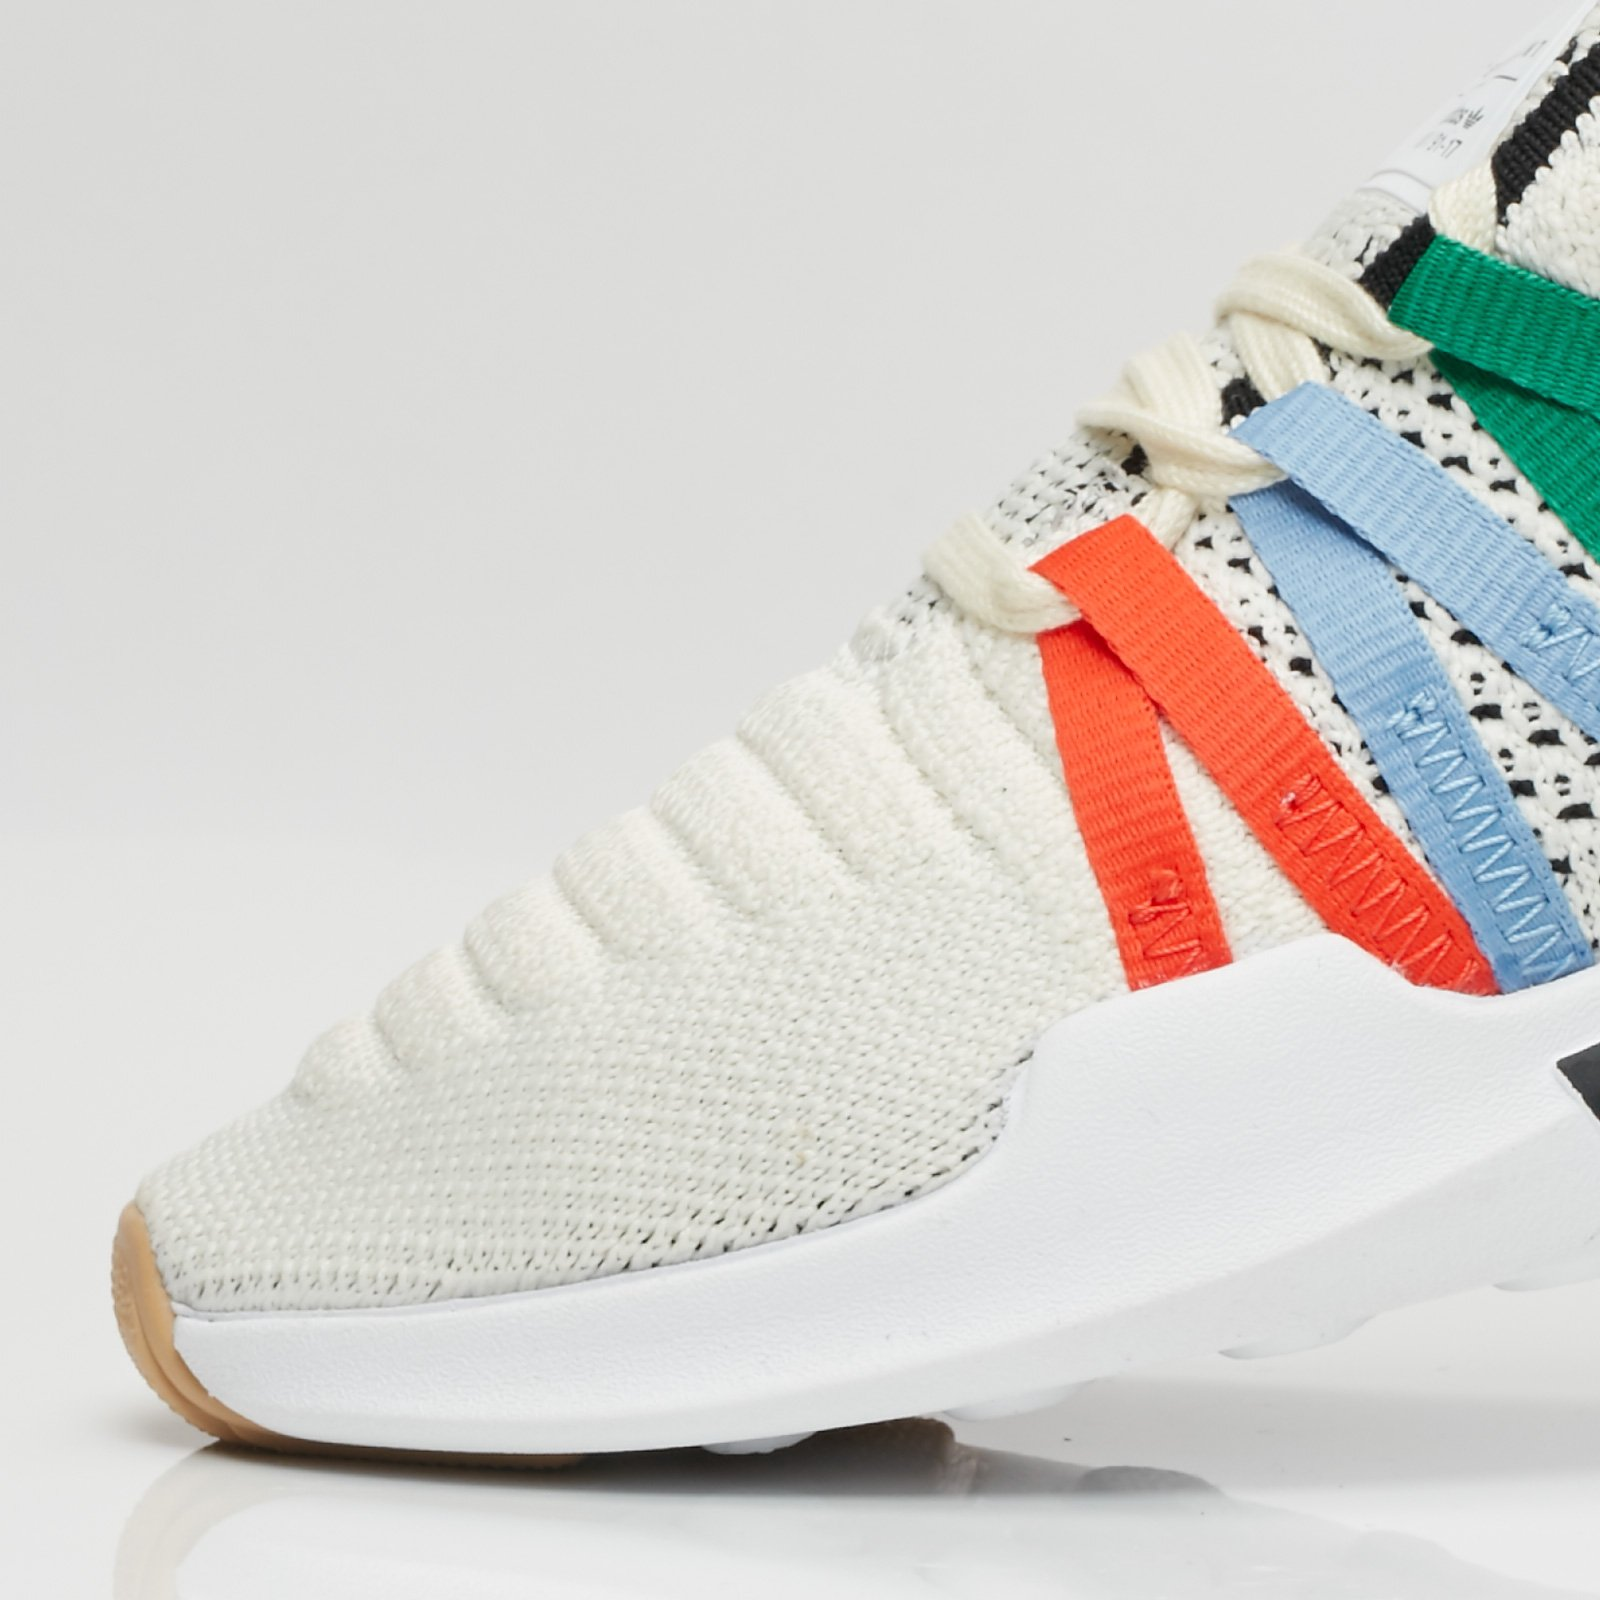 buy online cc561 aec8d ... adidas Originals EQT Racing ADV PK W ...